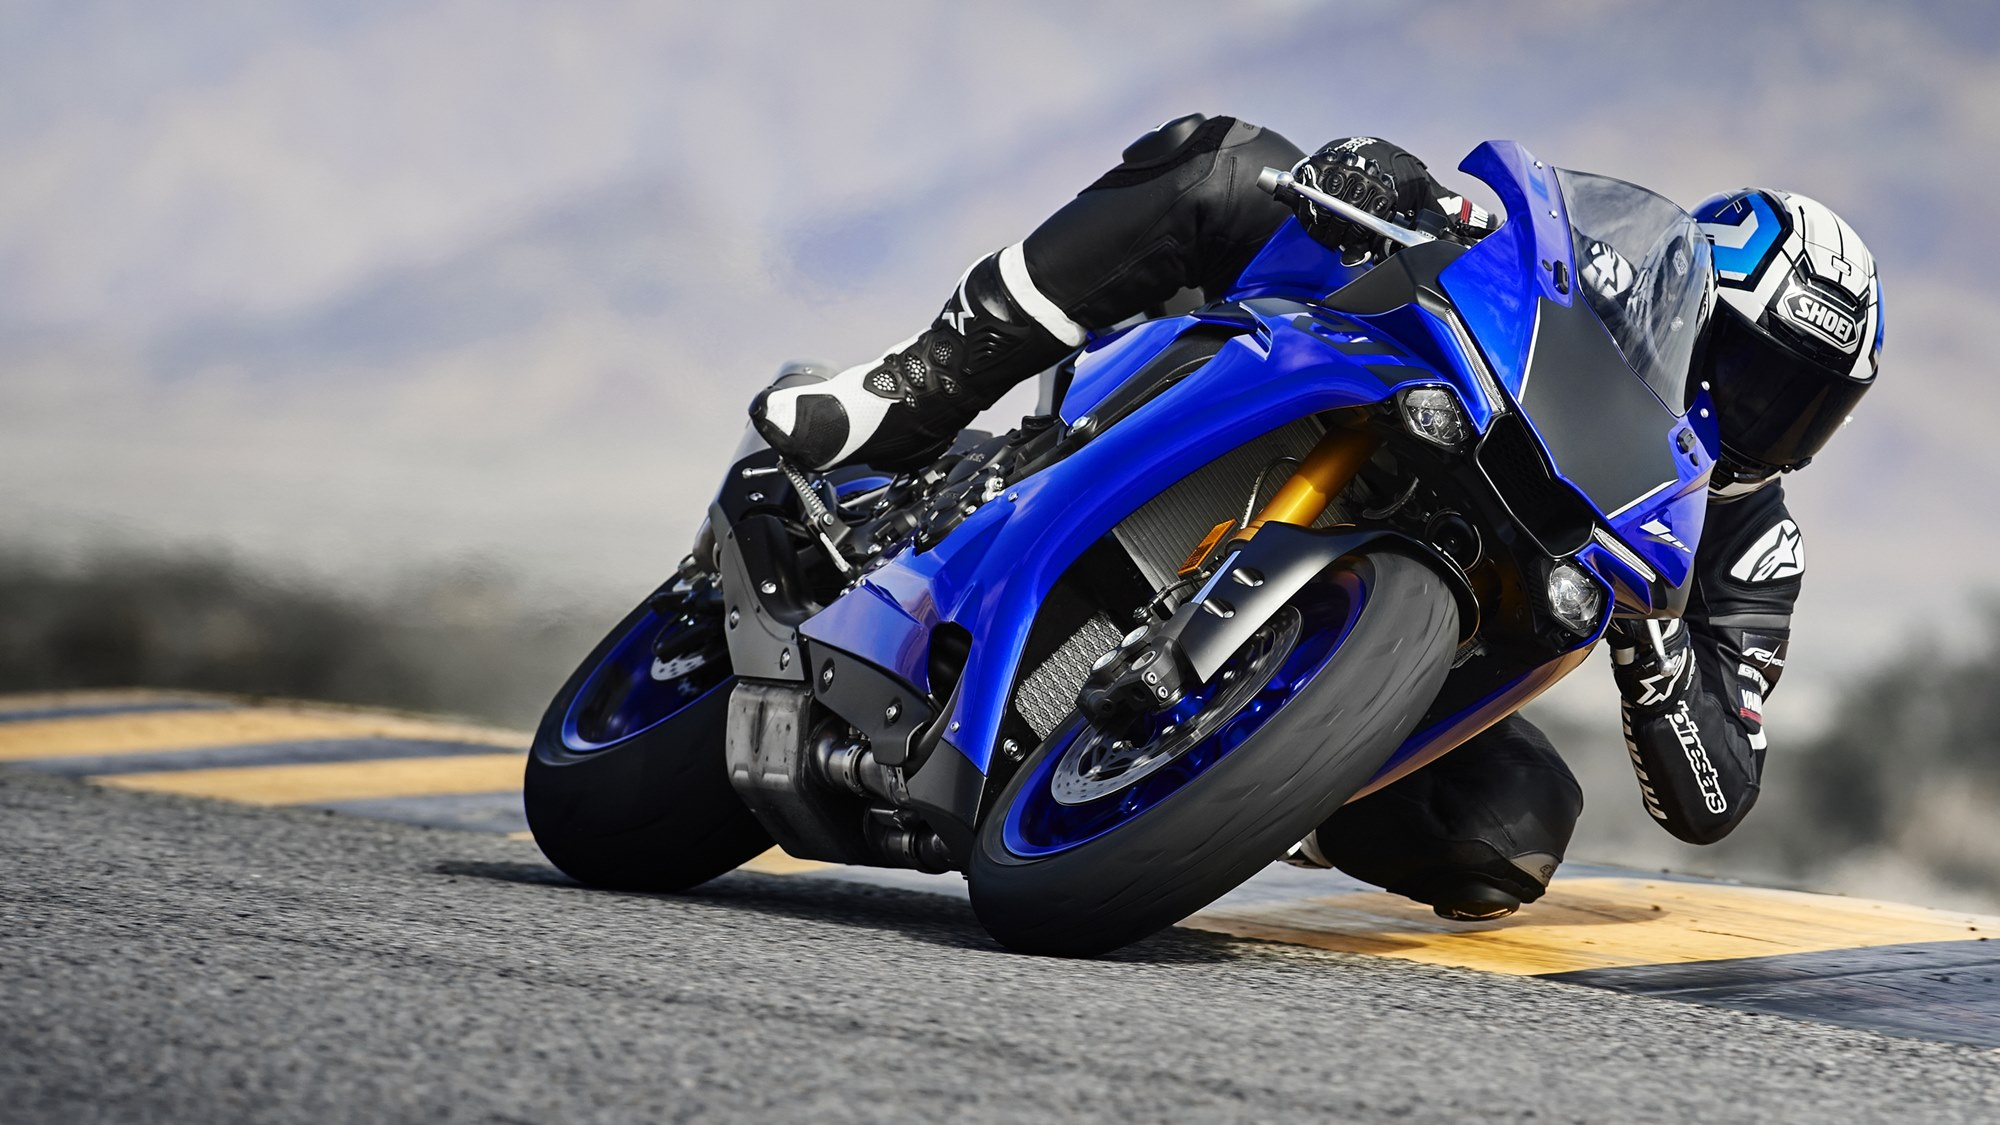 Yamaha YZF R1 Estimated Price, Launch Date 2020, Images